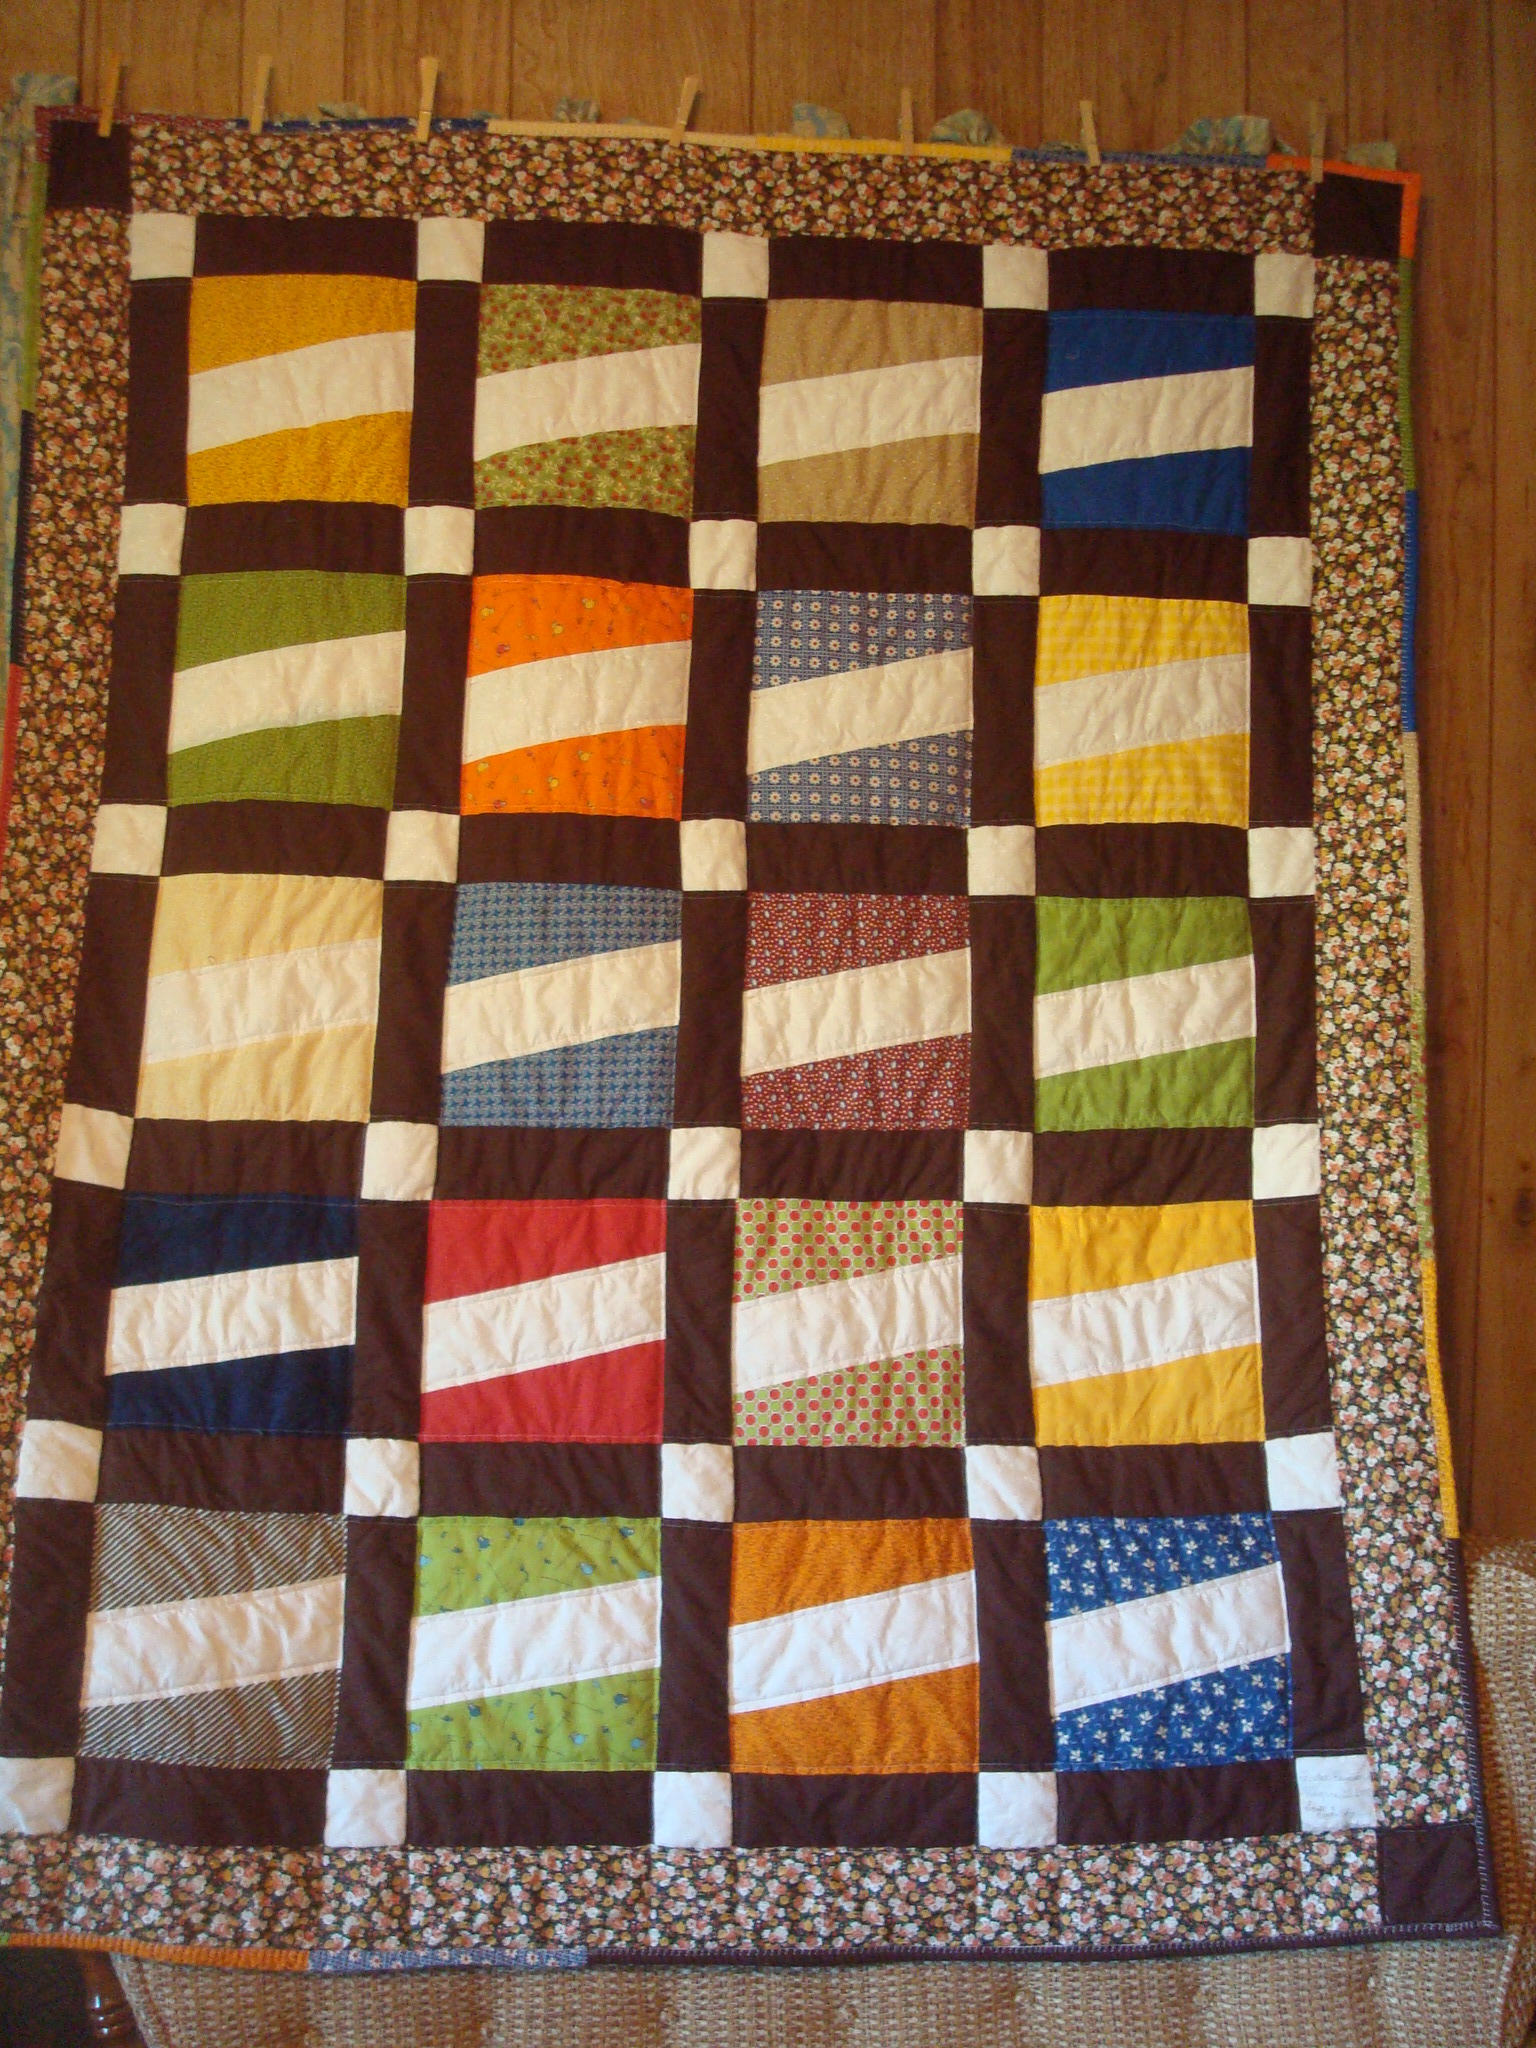 Name:  2012-June 28-Foster signature quilt.jpg Views: 4603 Size:  1.05 MB